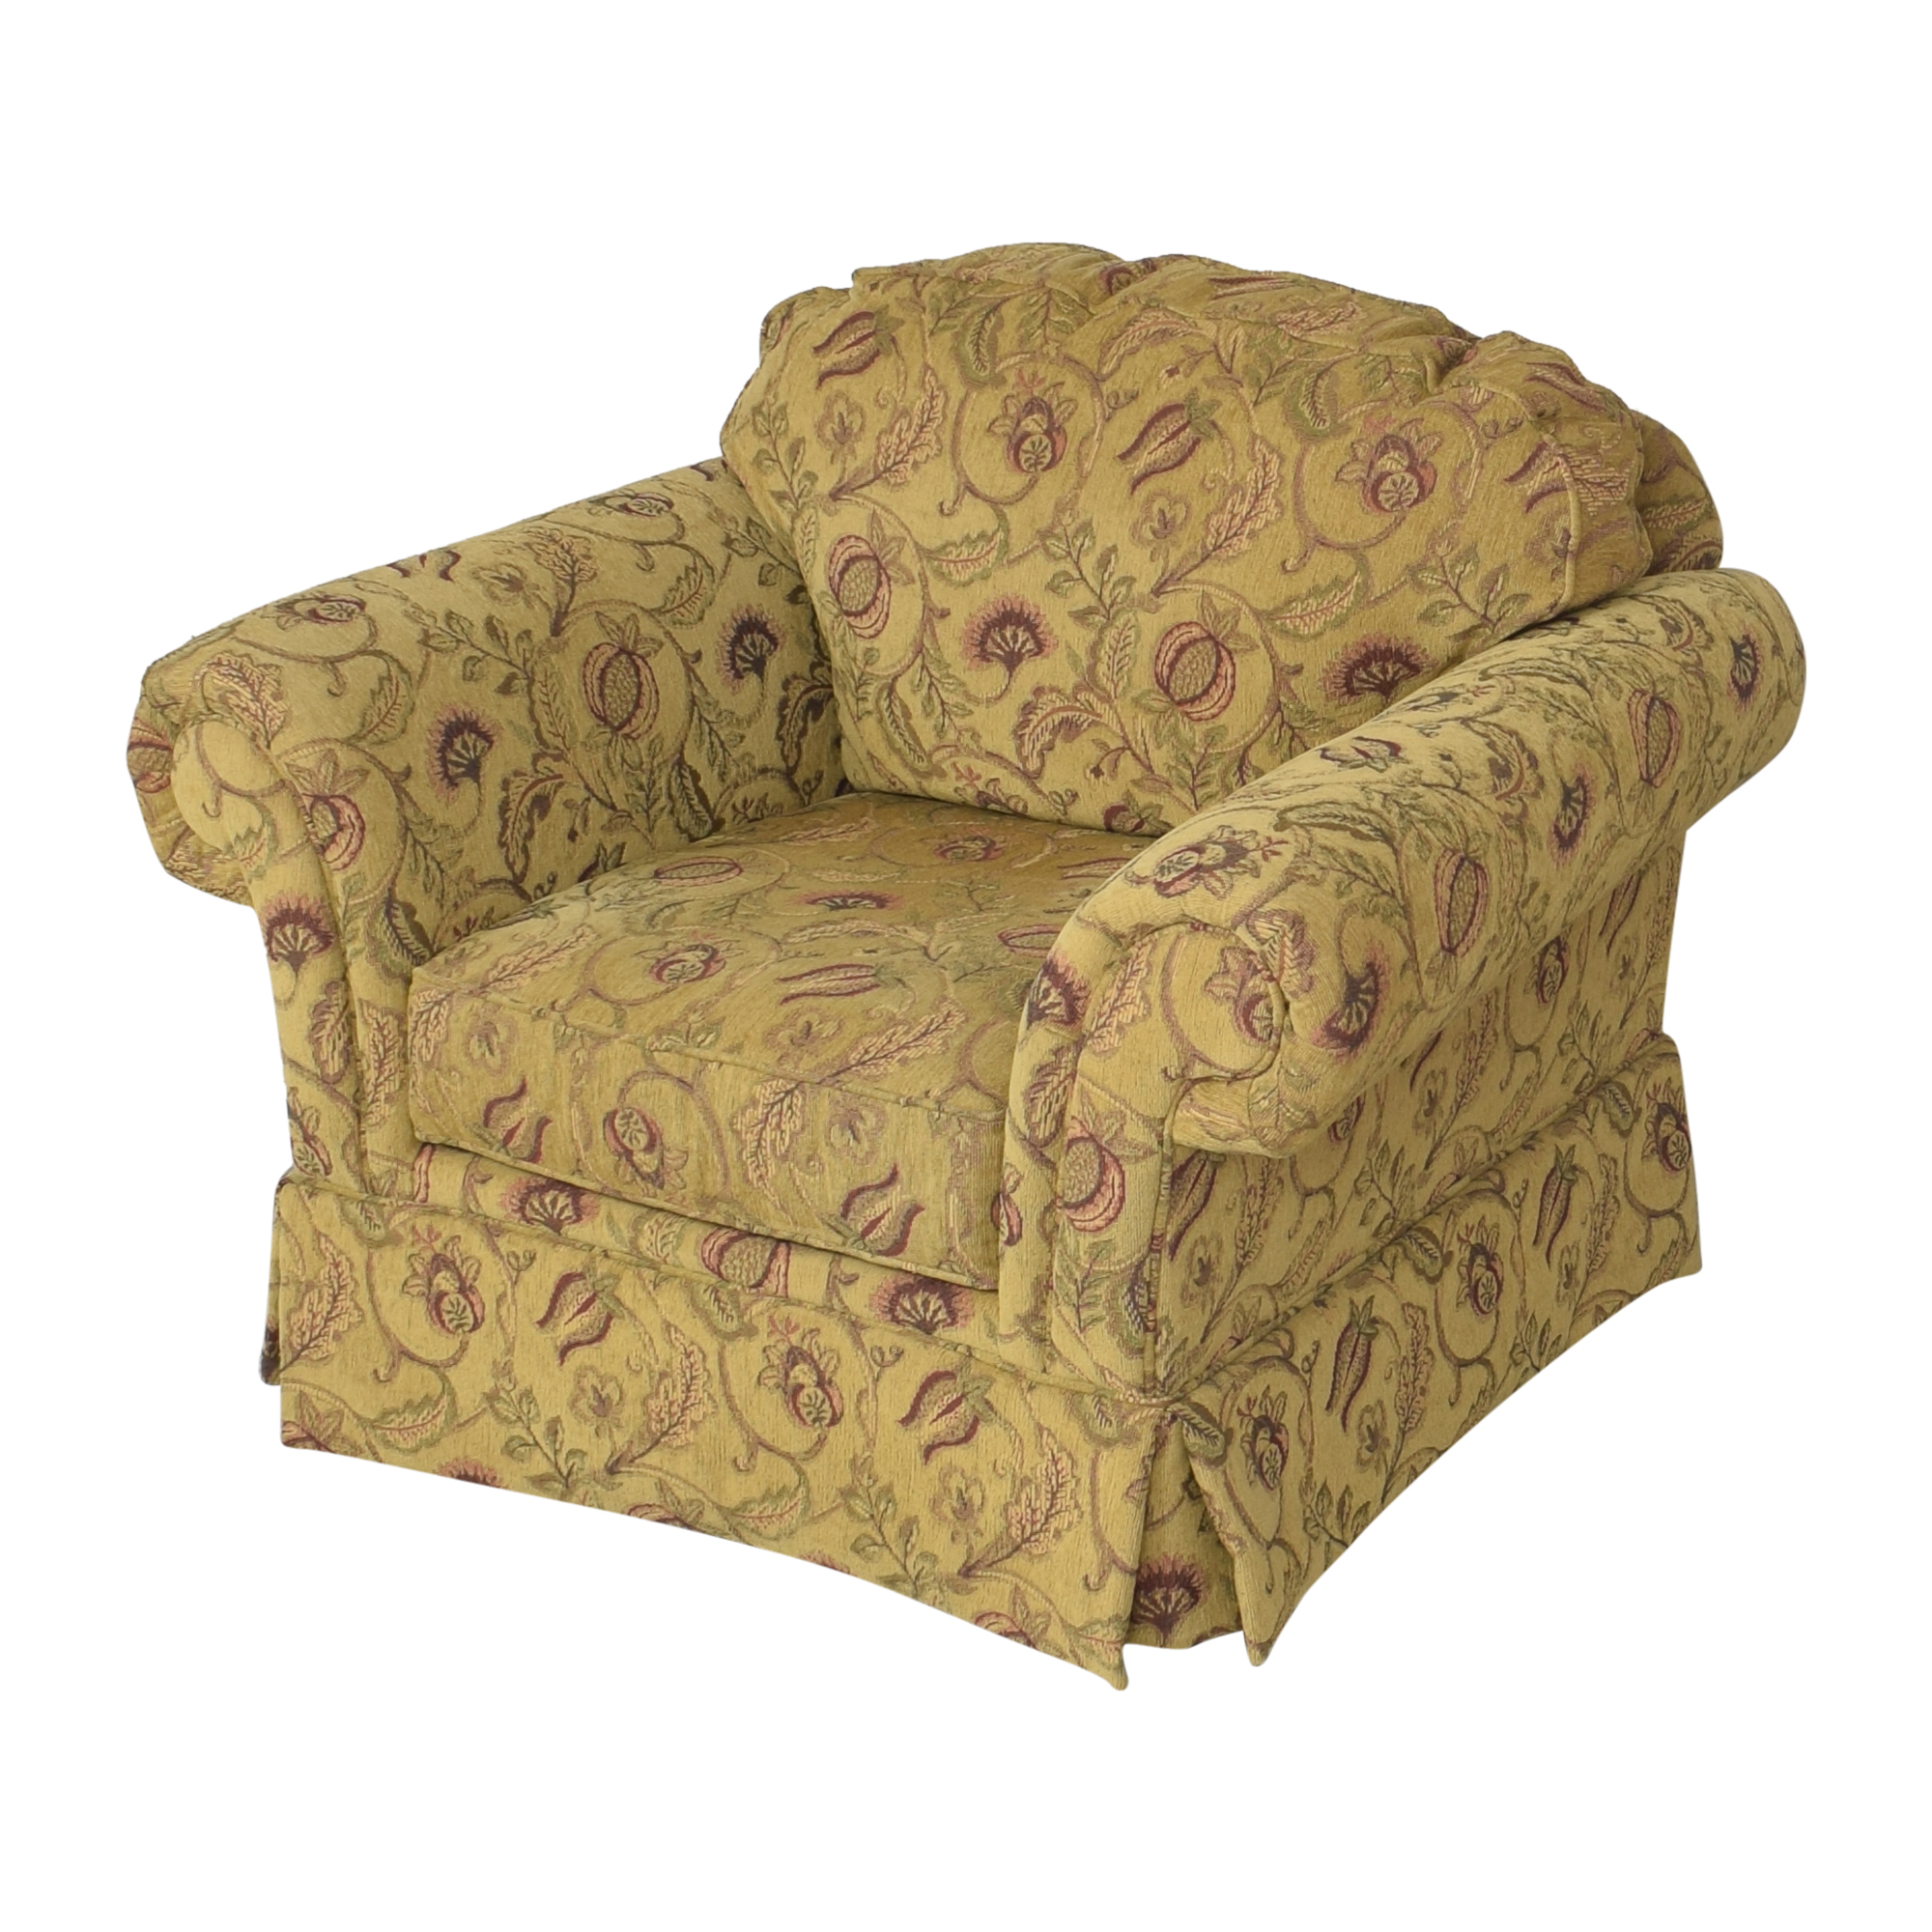 Broyhill Furniture Roll Arm Chair with Ottoman Broyhill Furniture